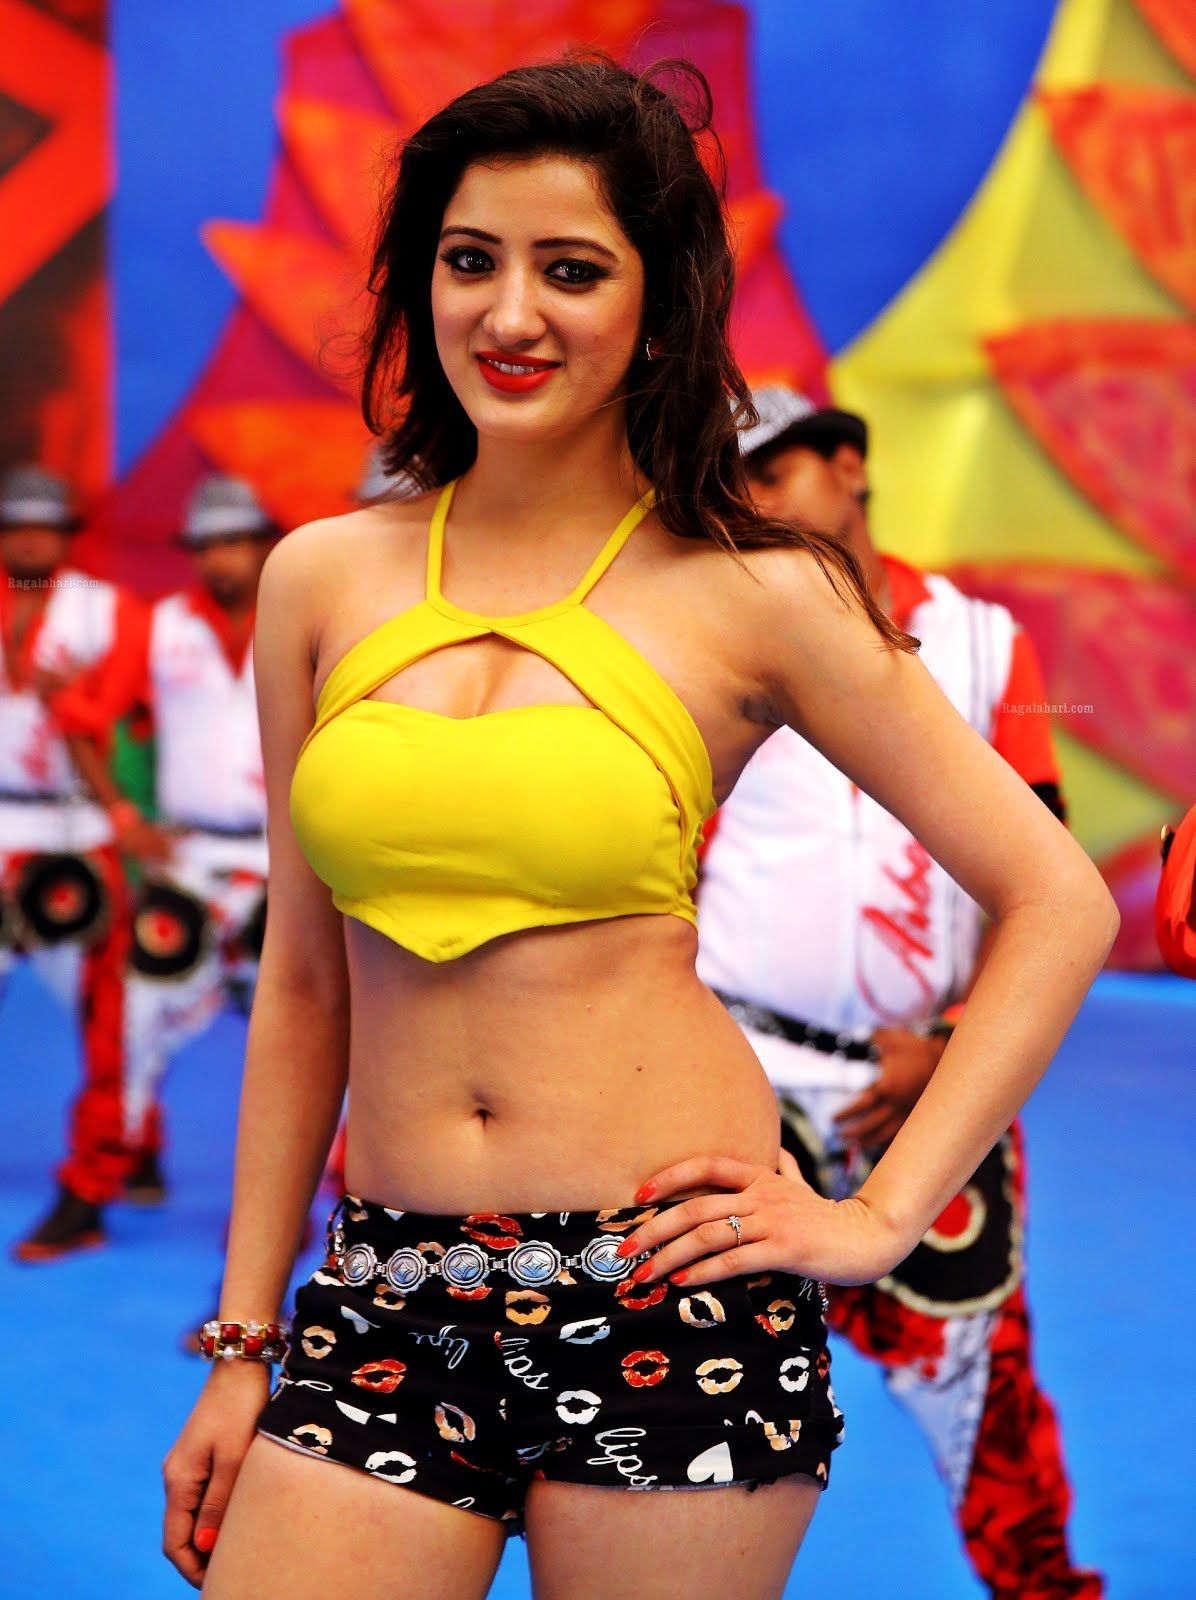 Hot And Sexy Actress Pictures Bollywood Hot Actress South Indian Hot Actress Navel Show Hot Actress Gif Images Hot Actress Backless Hot Navel